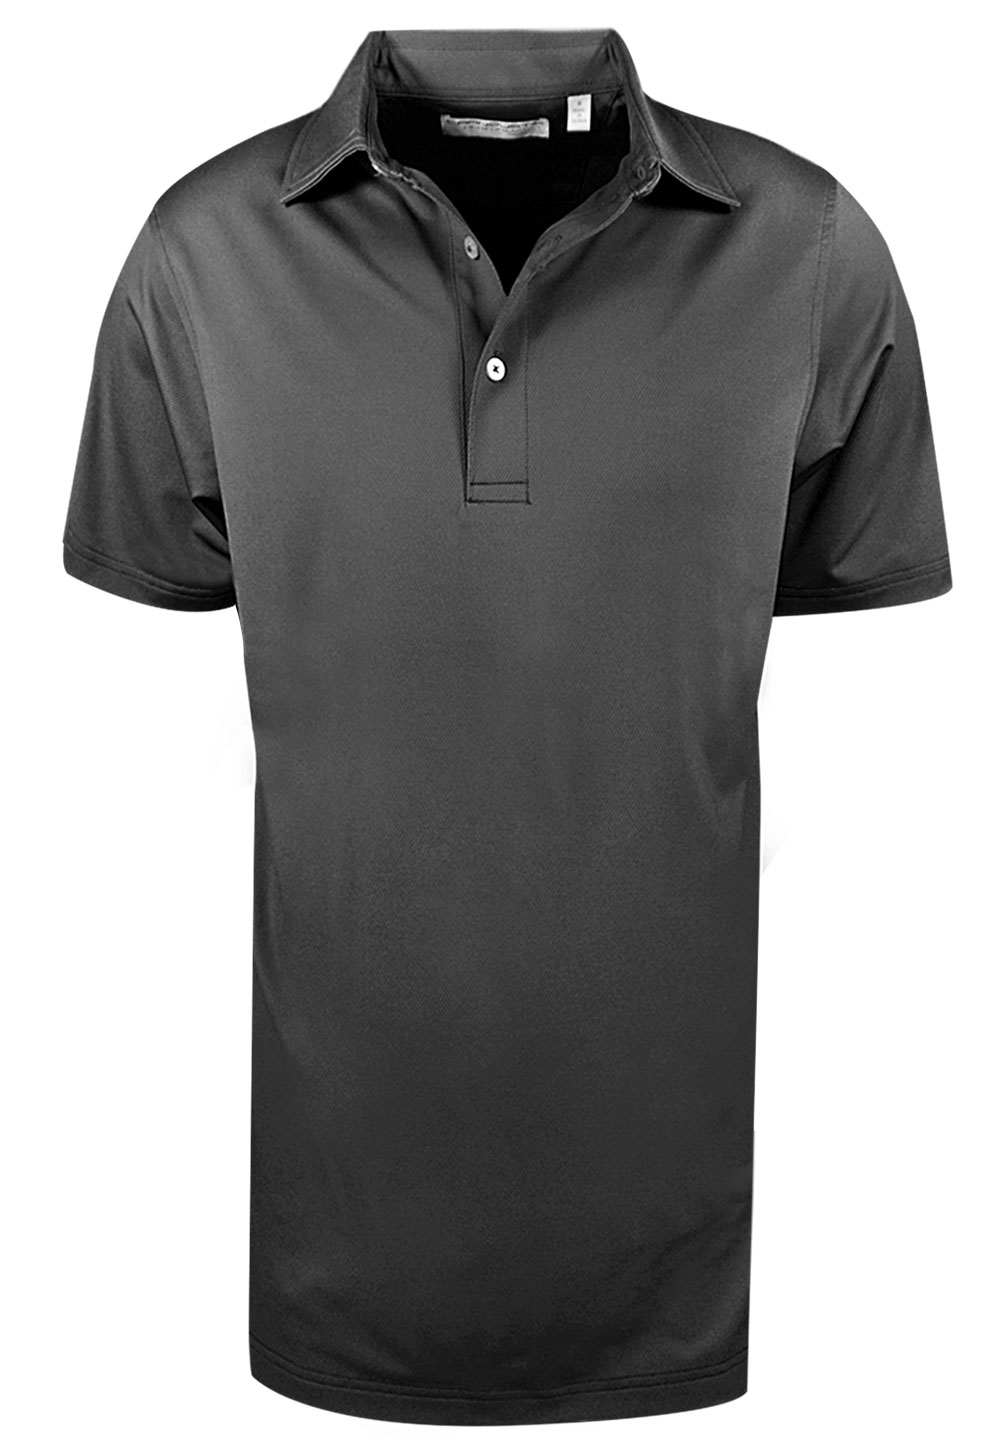 Carnoustie Golf- Solid Performance Polo